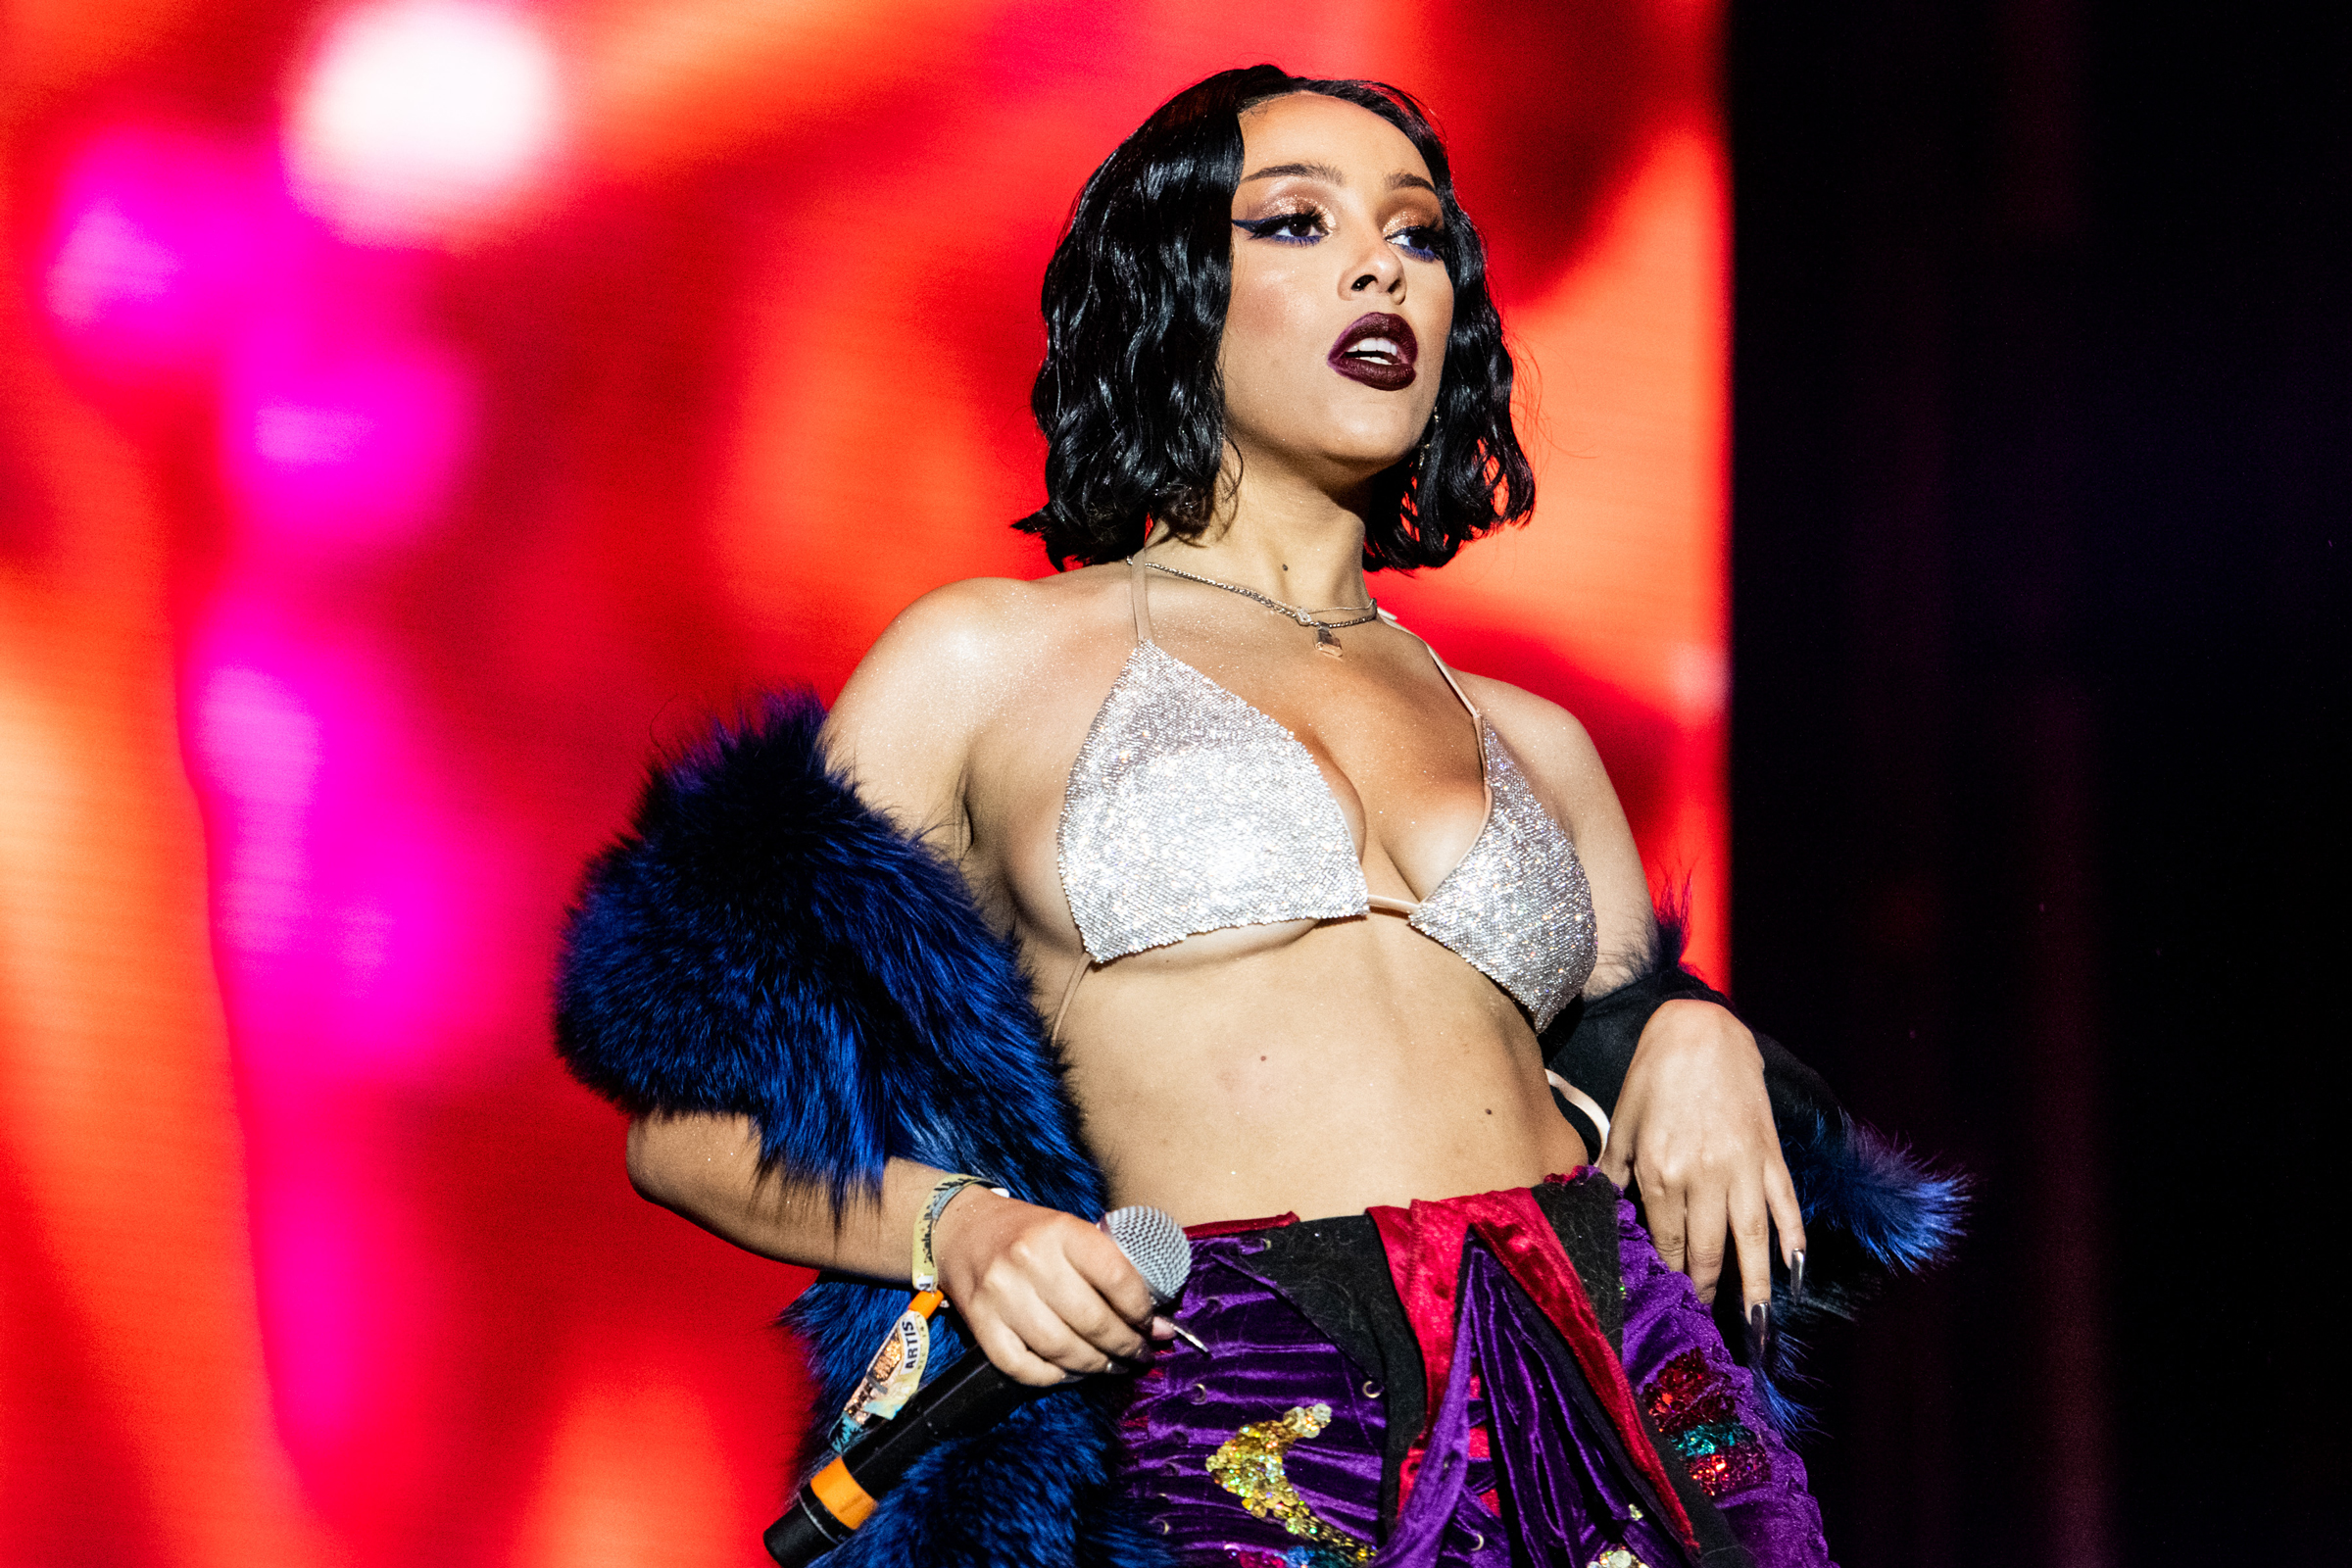 Doja Cat, a South African woman with short, brown hair, performs on stage in a red outfit